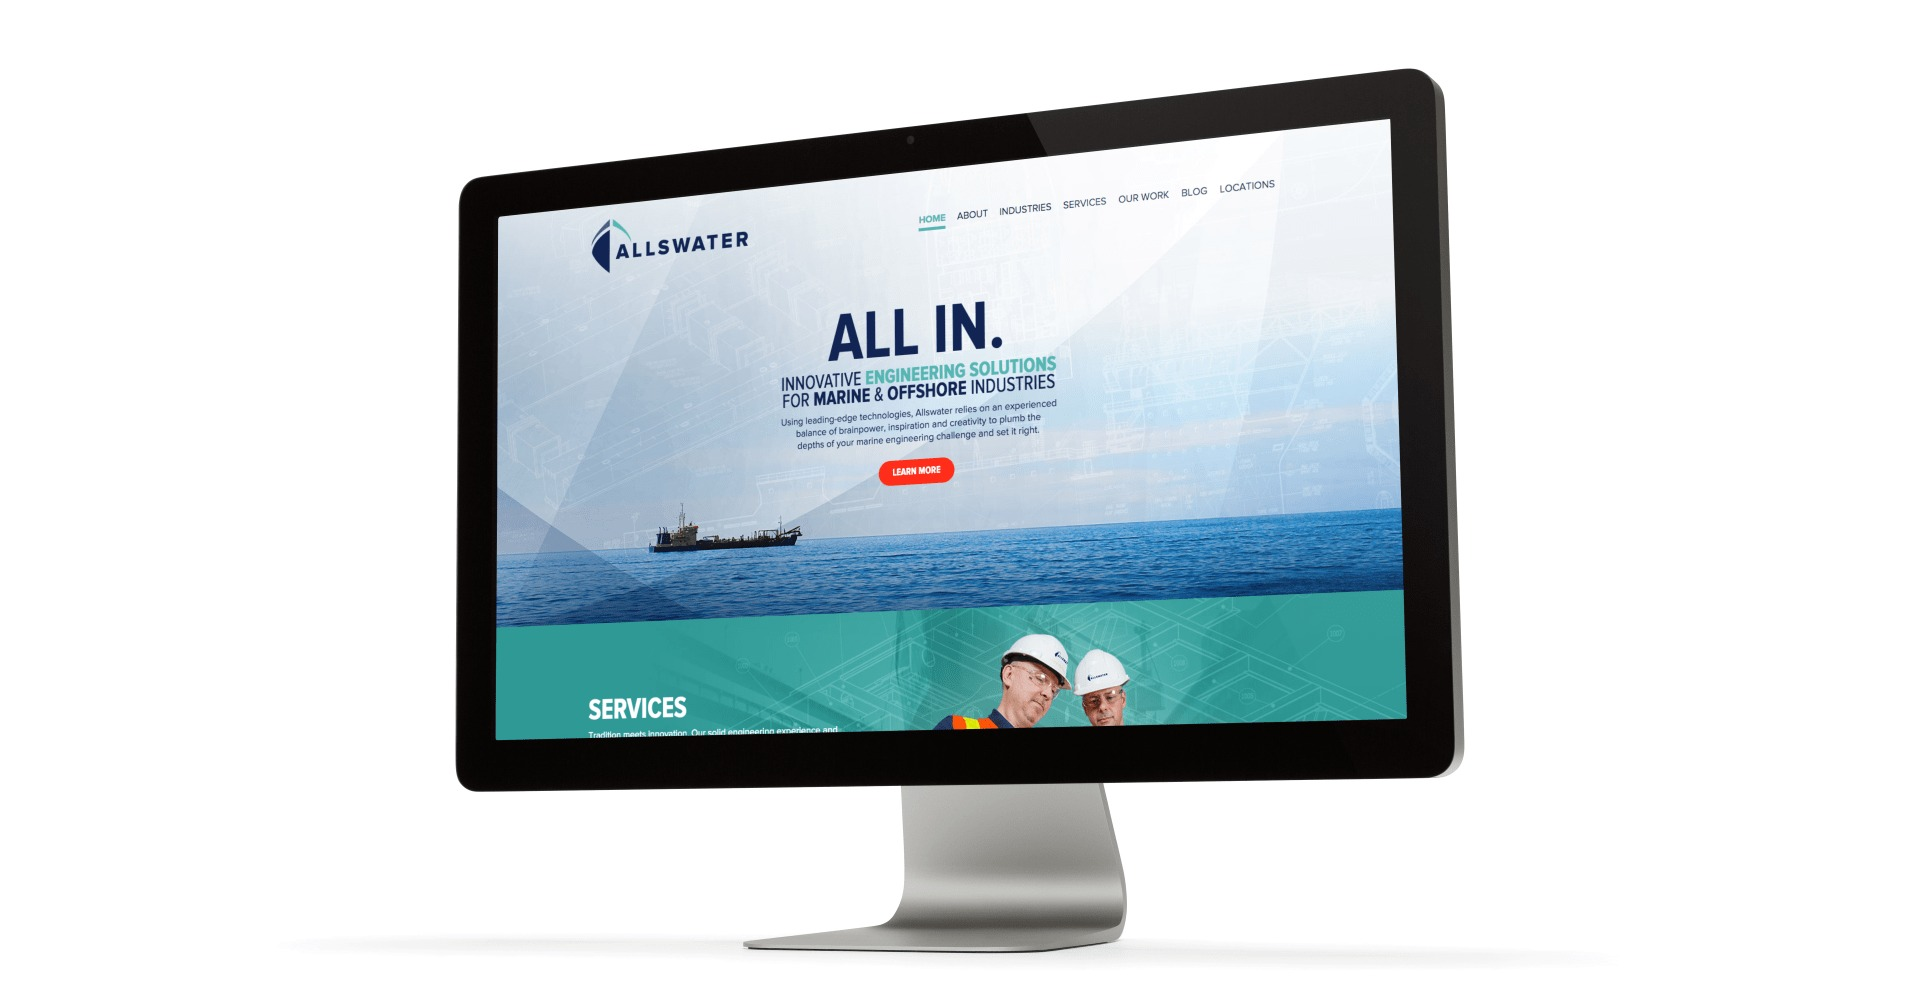 Allswater website design